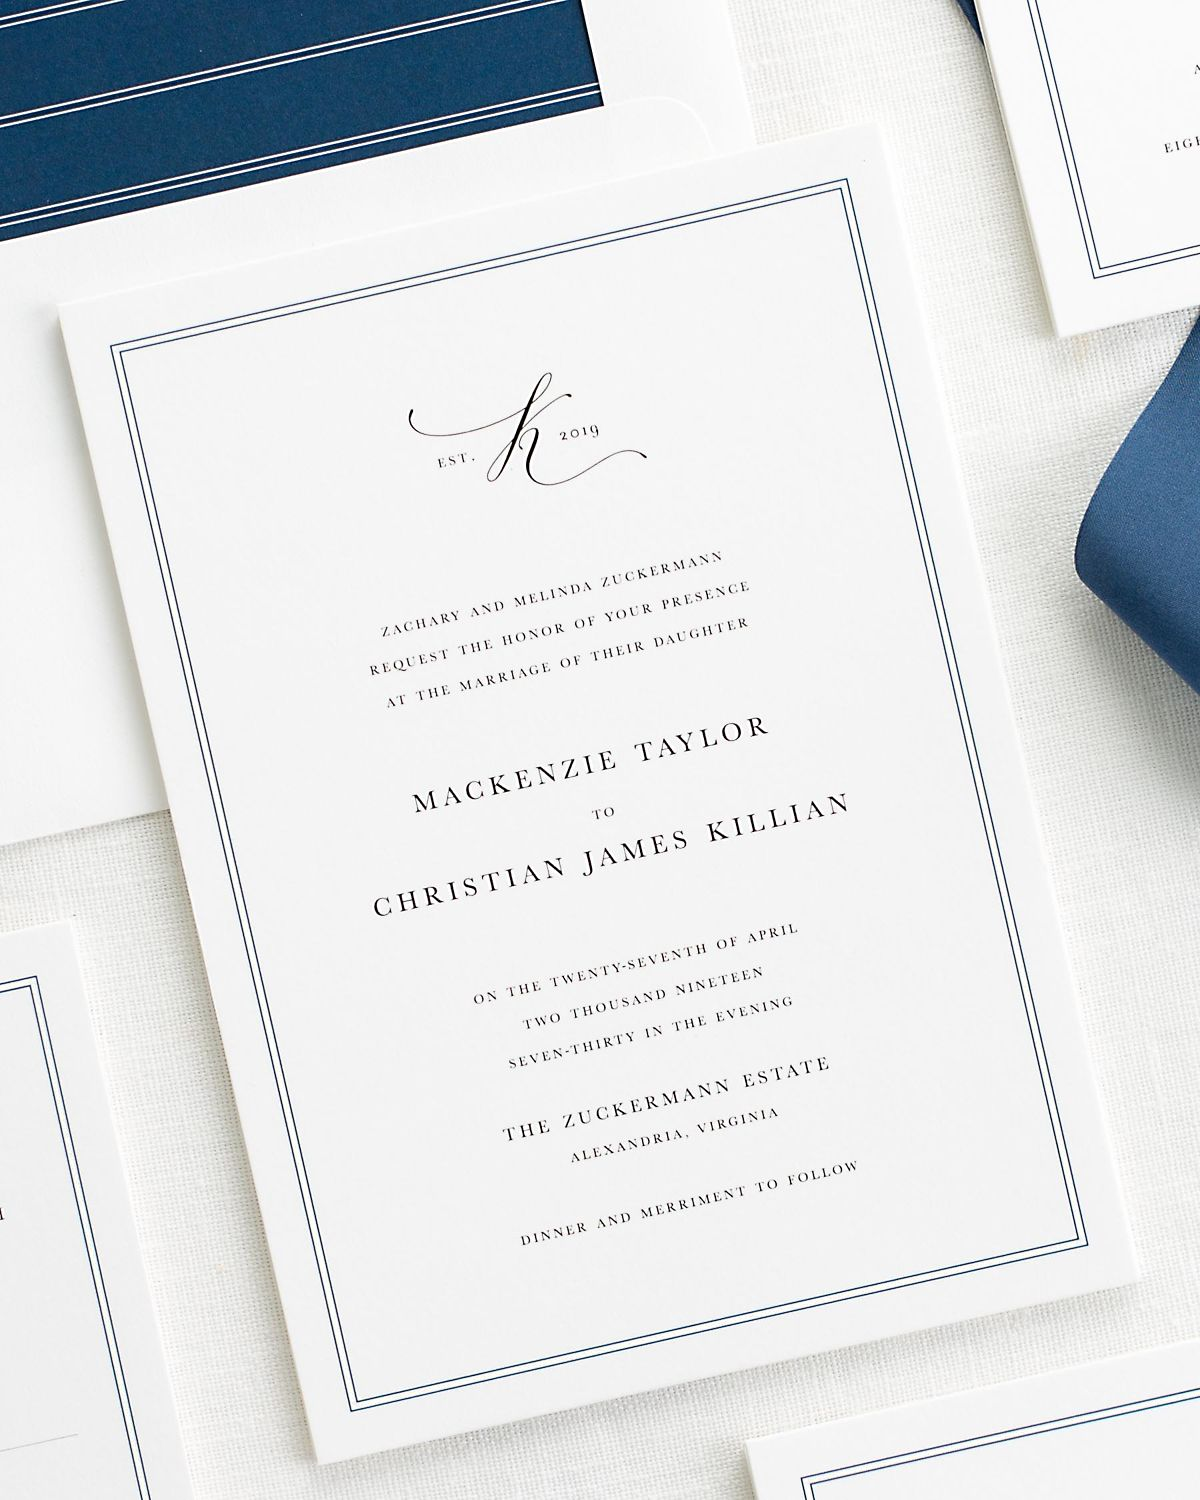 Mackenzie Wedding Invitations